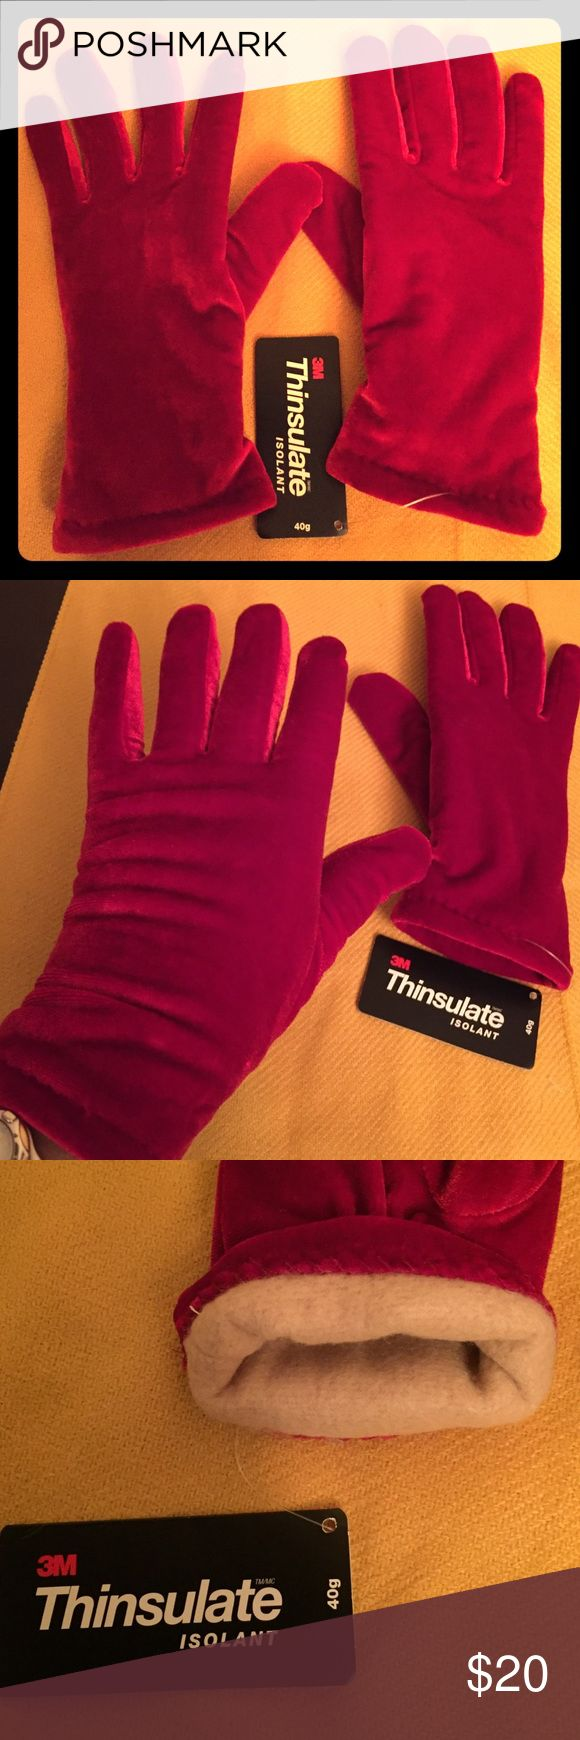 🆕 Red Velvet Gloves Red Velvet Gloves with Thinsulate Isolant 40 Gram Lining. OS. Outer: 90% Polyester/10% Spandex. Soft Fabric Inside & Outside. Tan Fleece Lining. Elasticized Backs. Gloves come right Below Your Wrists. Brand New. Excellent Condition. No Trades. Cejon Accessories Gloves & Mittens